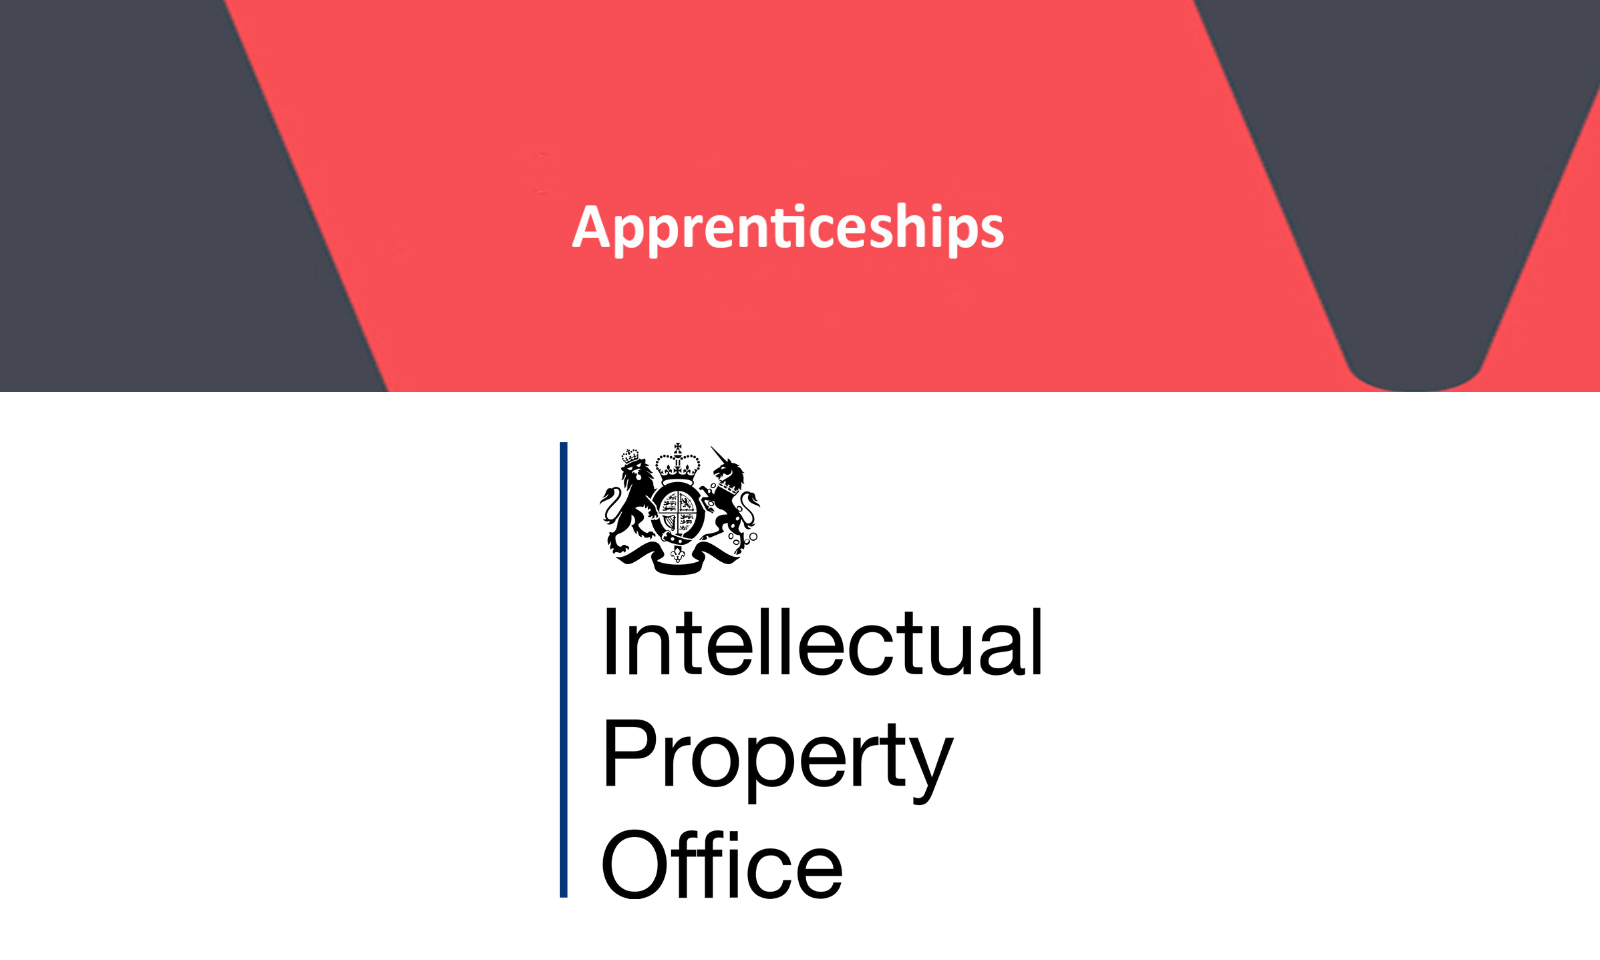 Apprenticeships at IPO